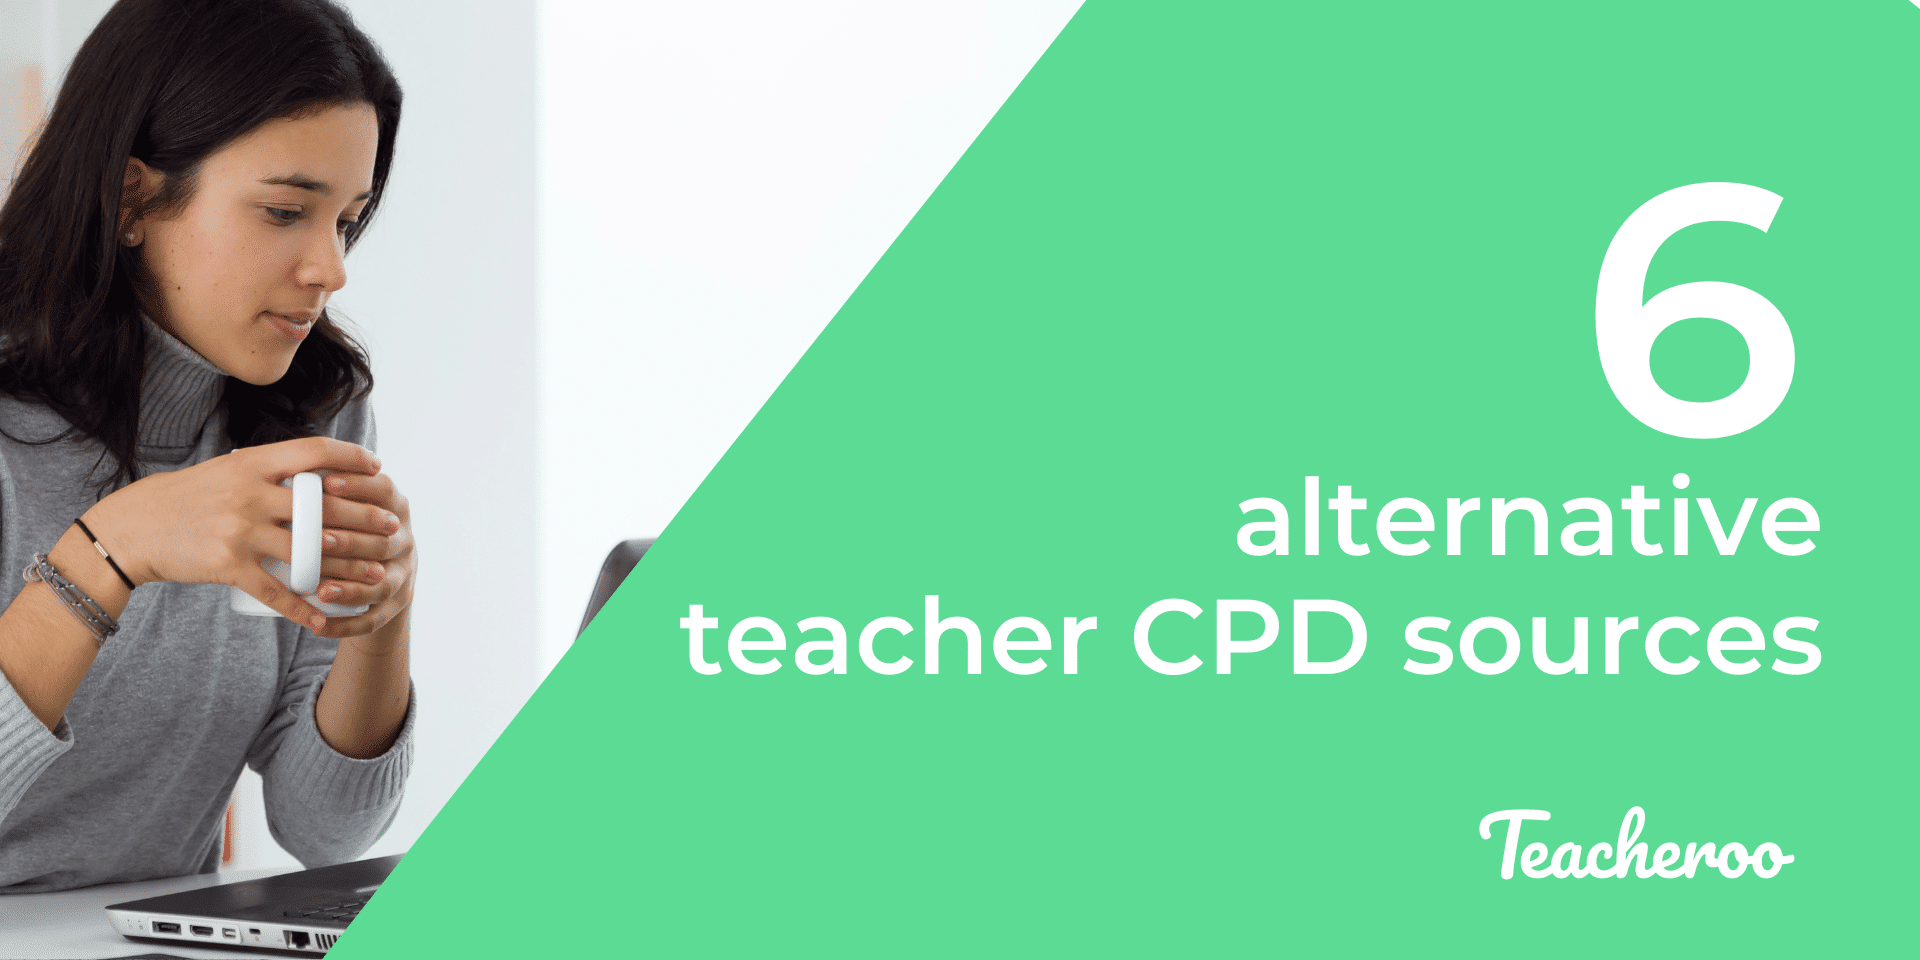 woman holds coffee and browses laptop showing alternative ways to access sources of teacher cpd